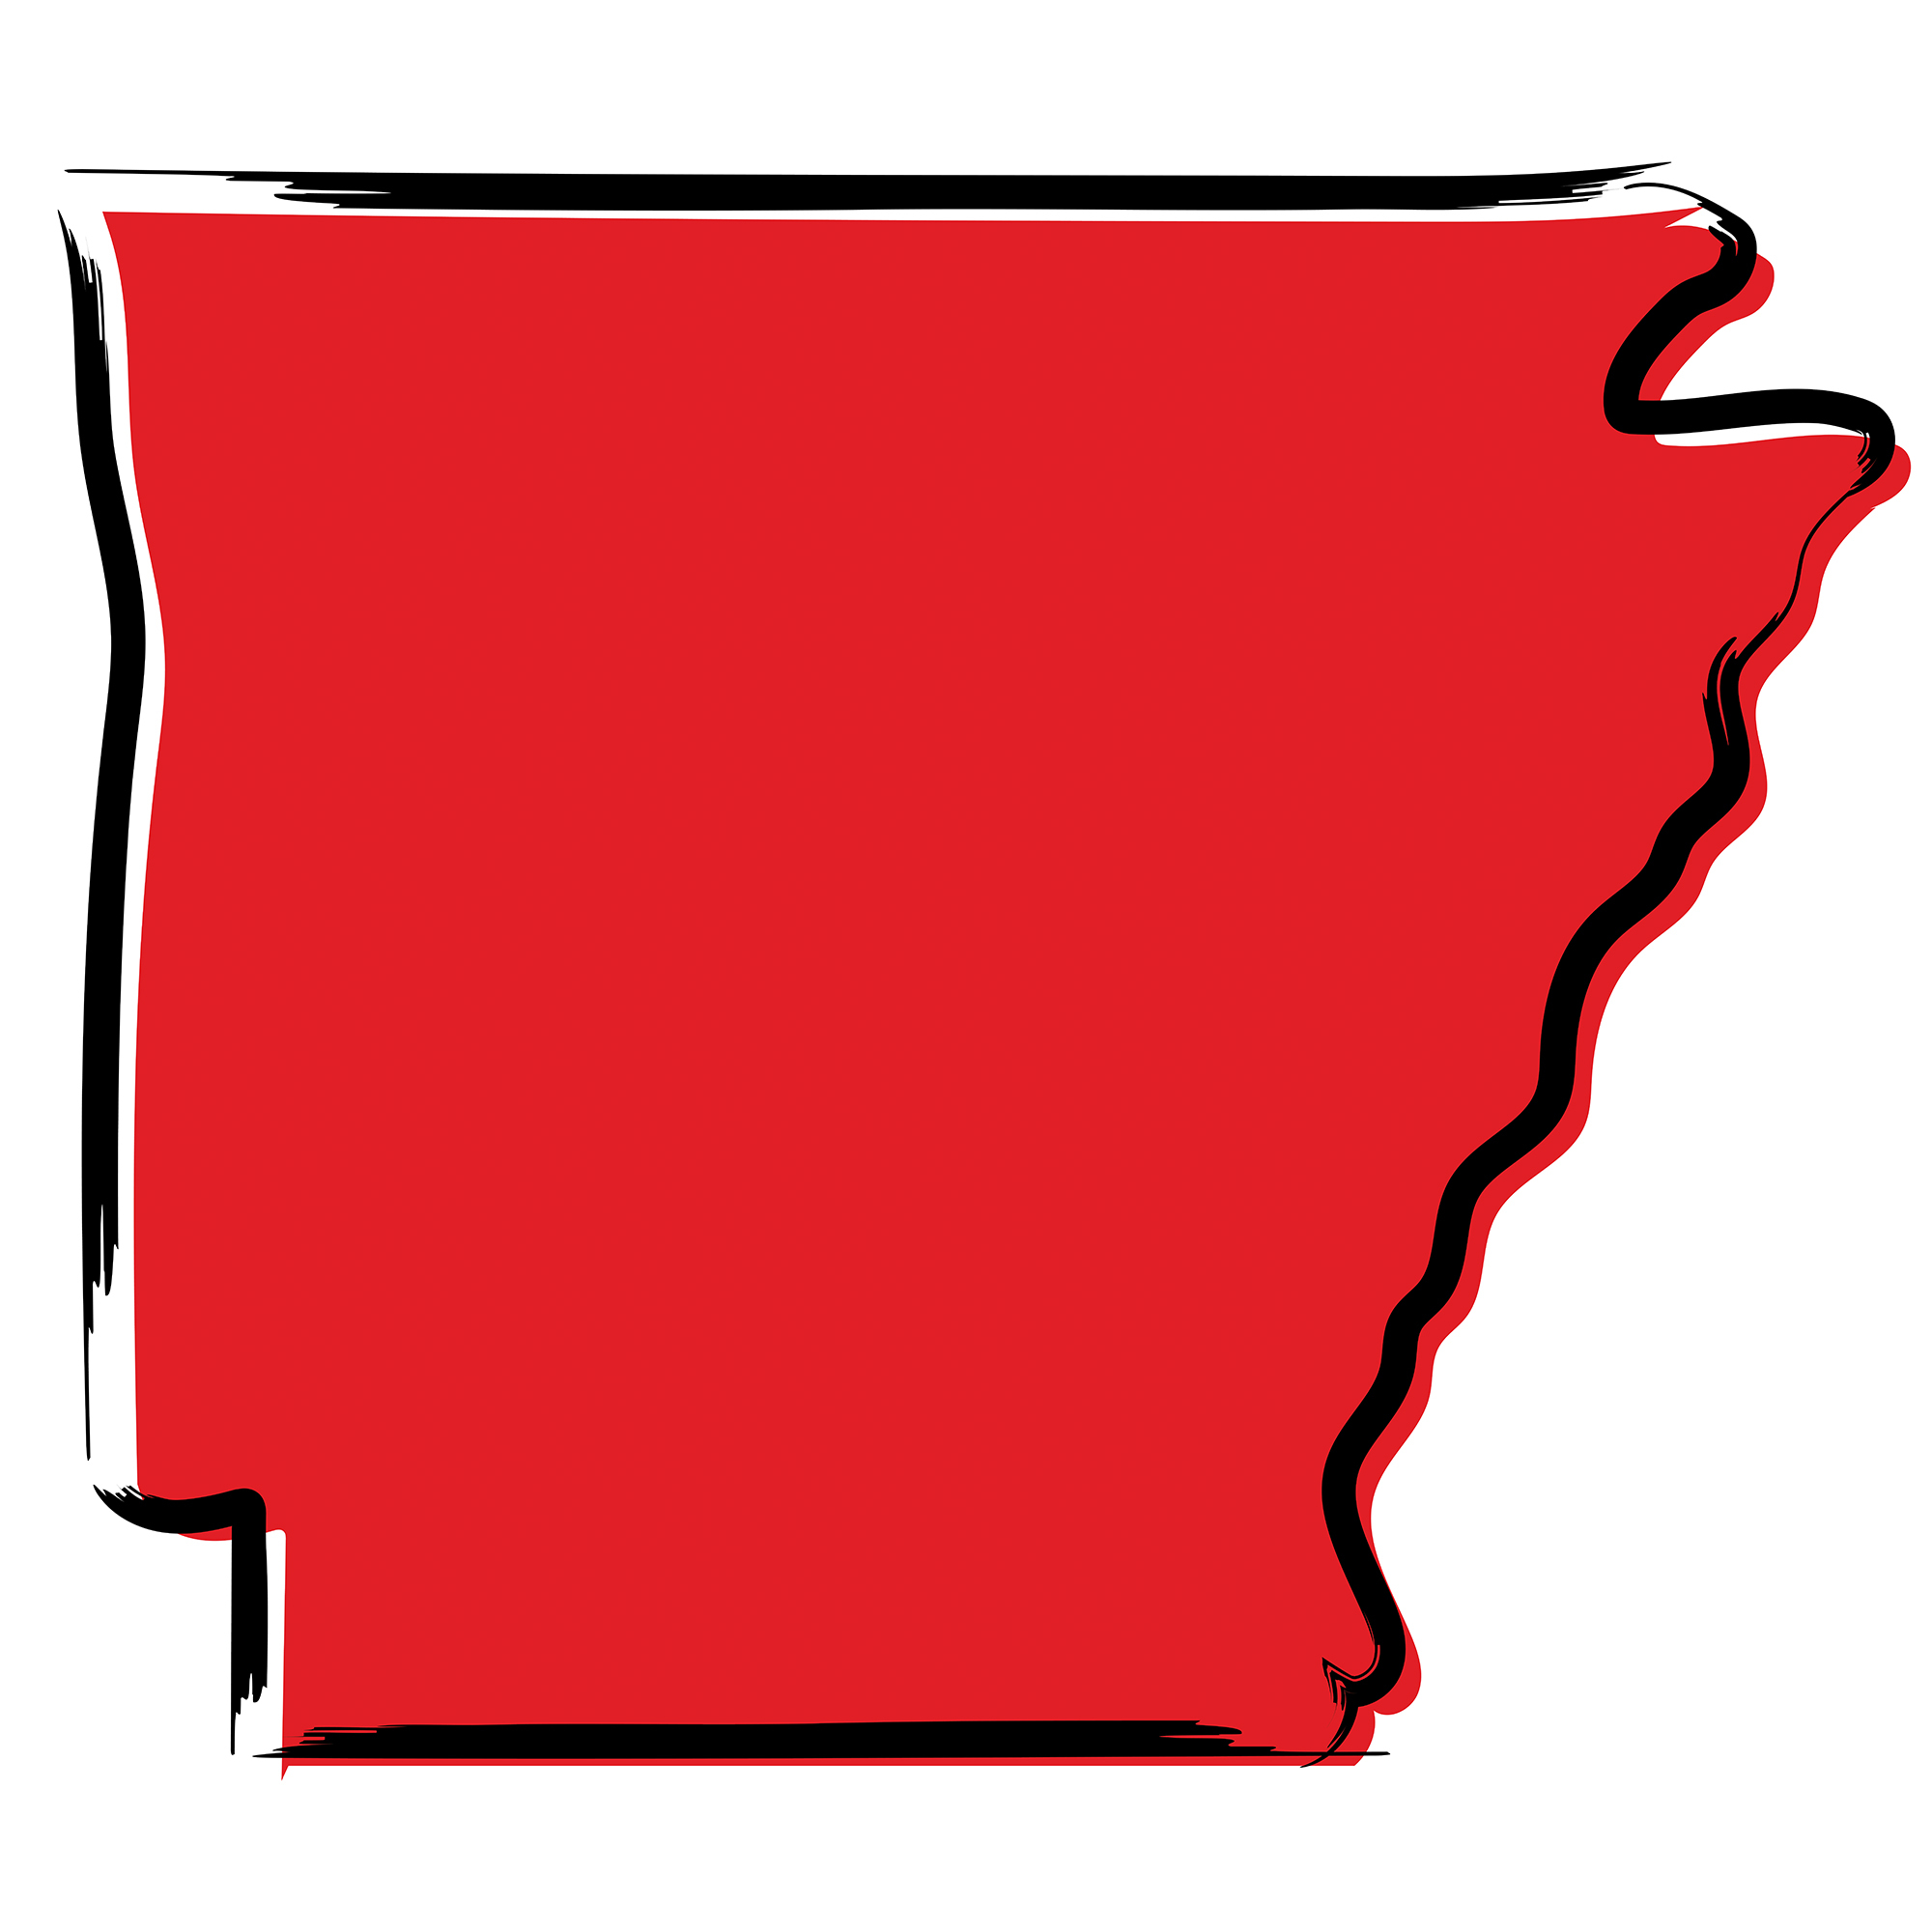 illustrated image of arkansas in red with black outline